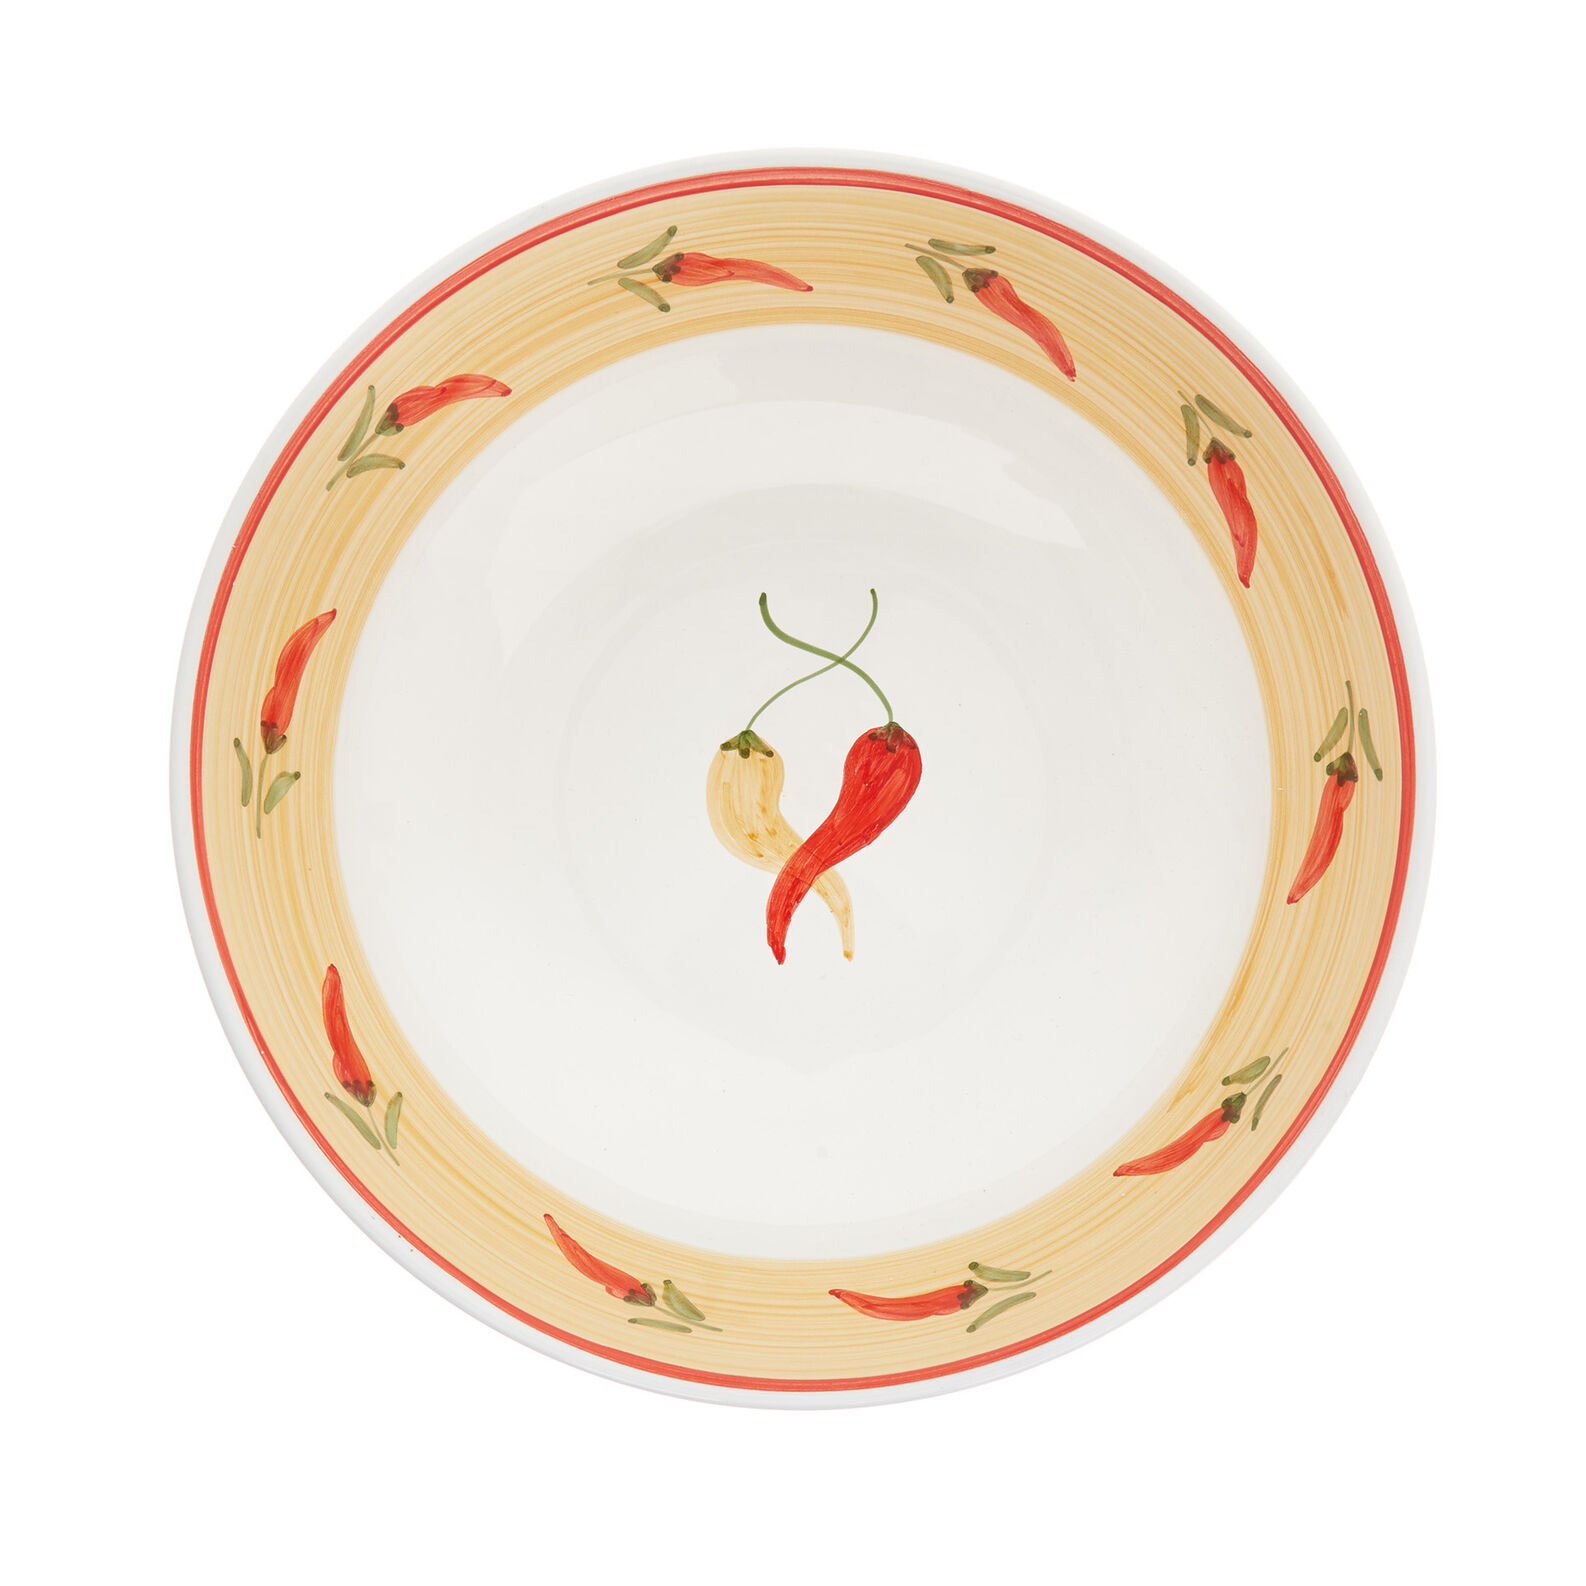 Coppa decoro peperoncino by Ceramiche Siciliane Ruggeri